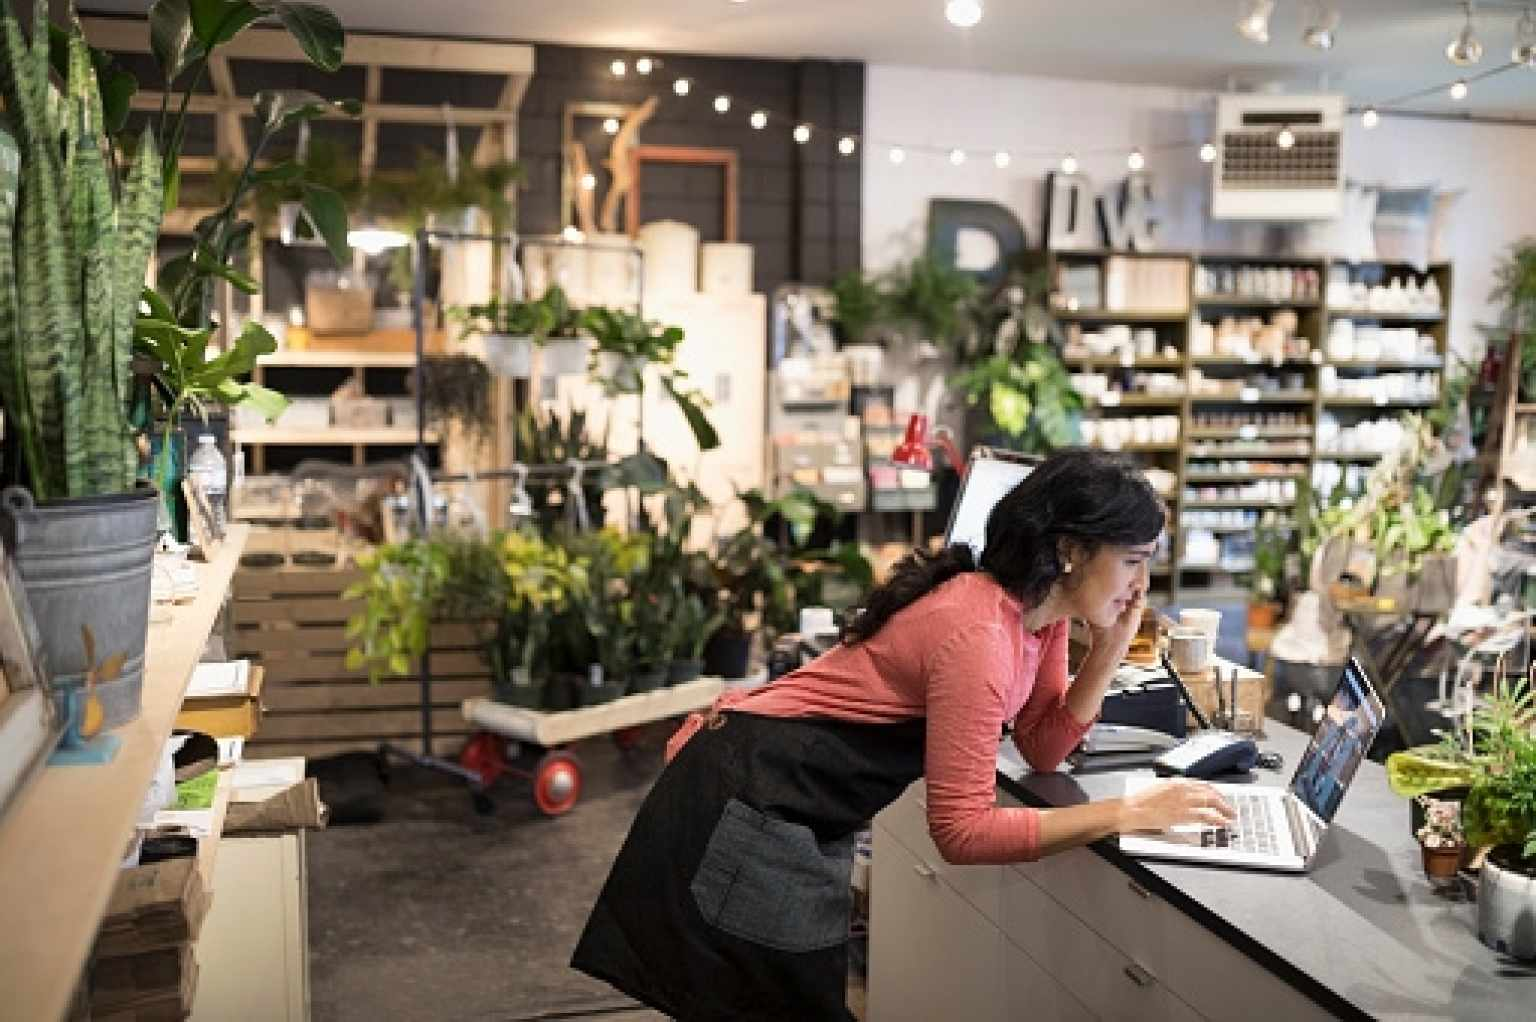 Woman on Computer in Plant Shop